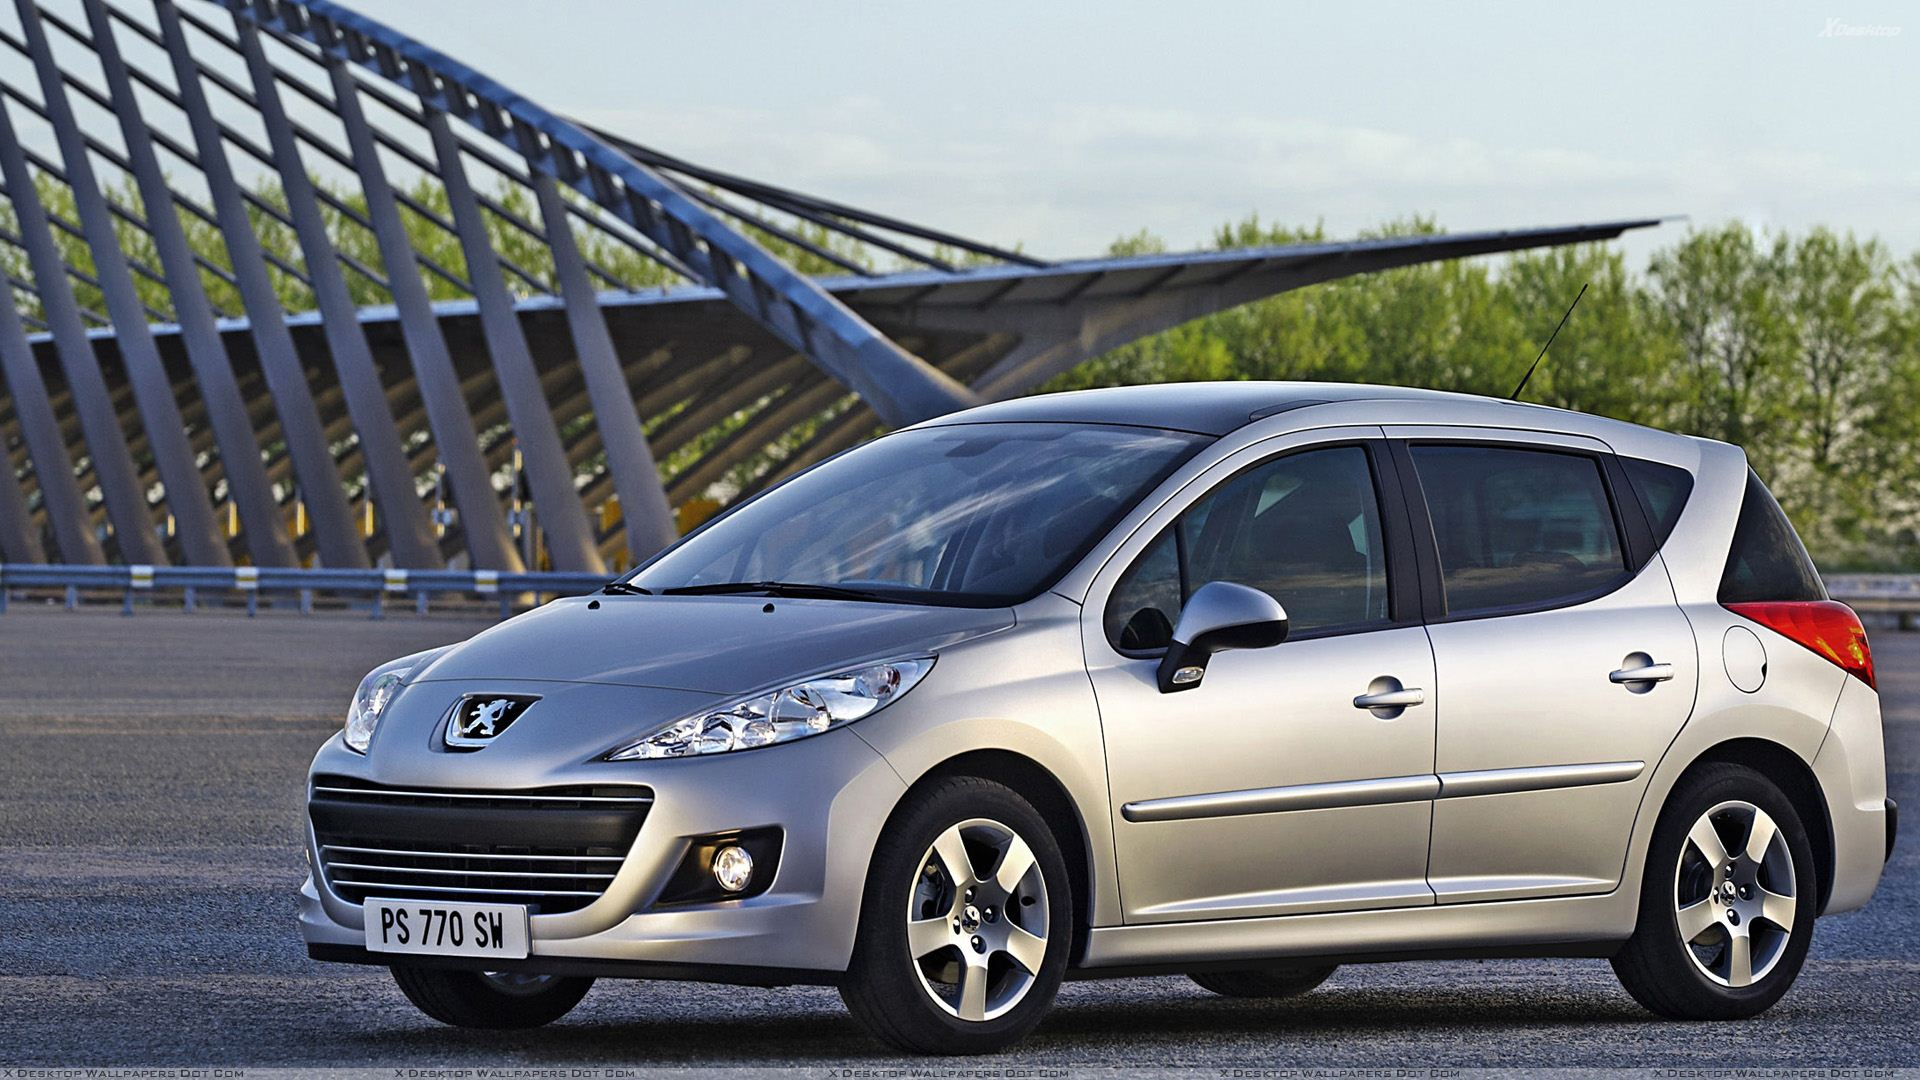 Peugeot 207 Wallpapers Photos Images In Hd